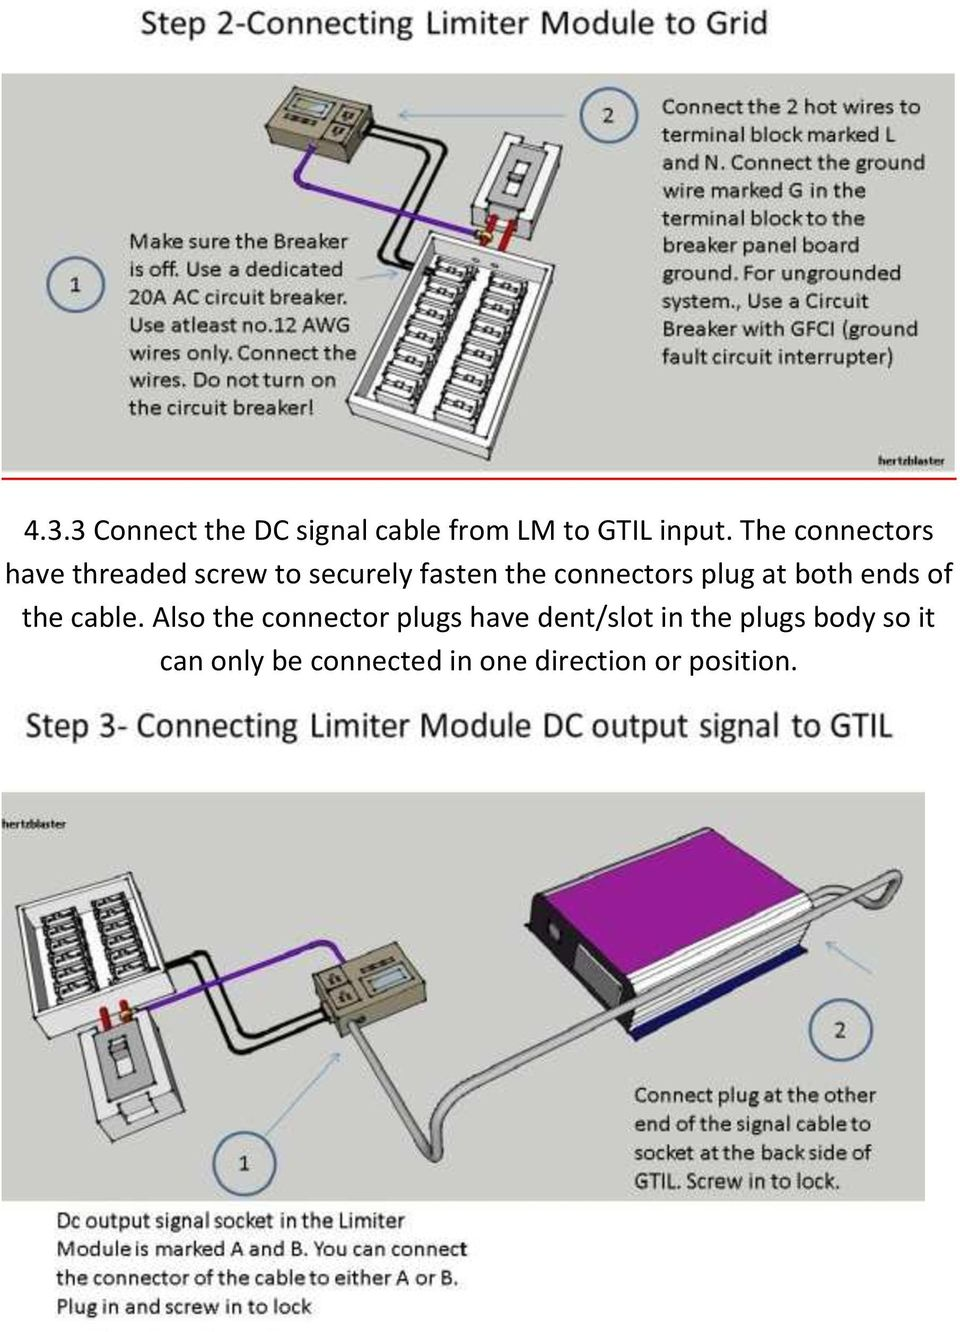 User Manual Of Grid Tie Inverter With Limiter Pdf Wiring Dc Circuit Breakers Plug At Both Ends The Cable